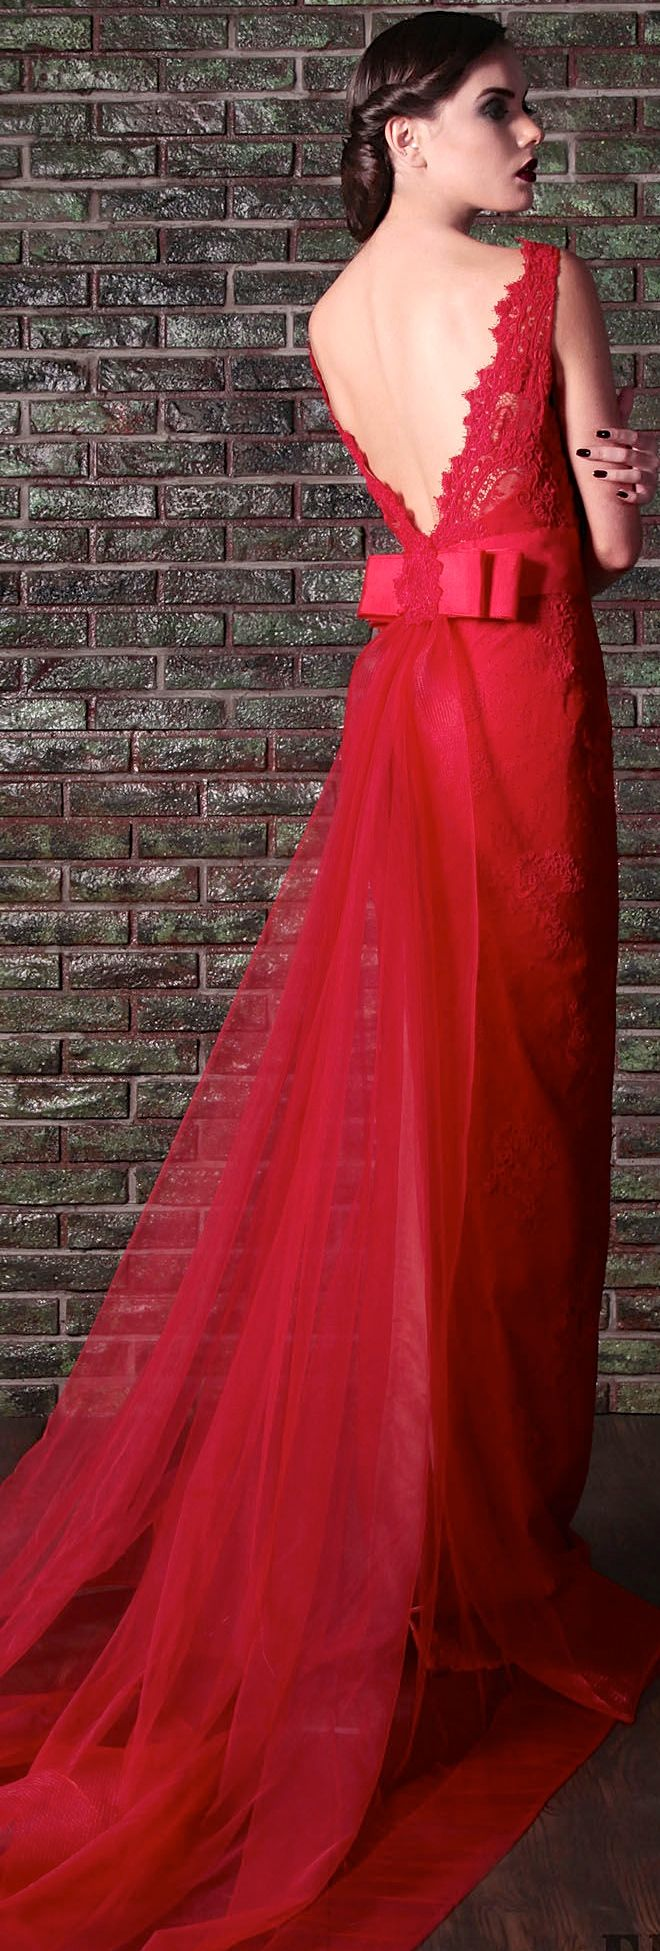 40 best Rote Kleider images on Pinterest | Red gowns, Evening gowns ...